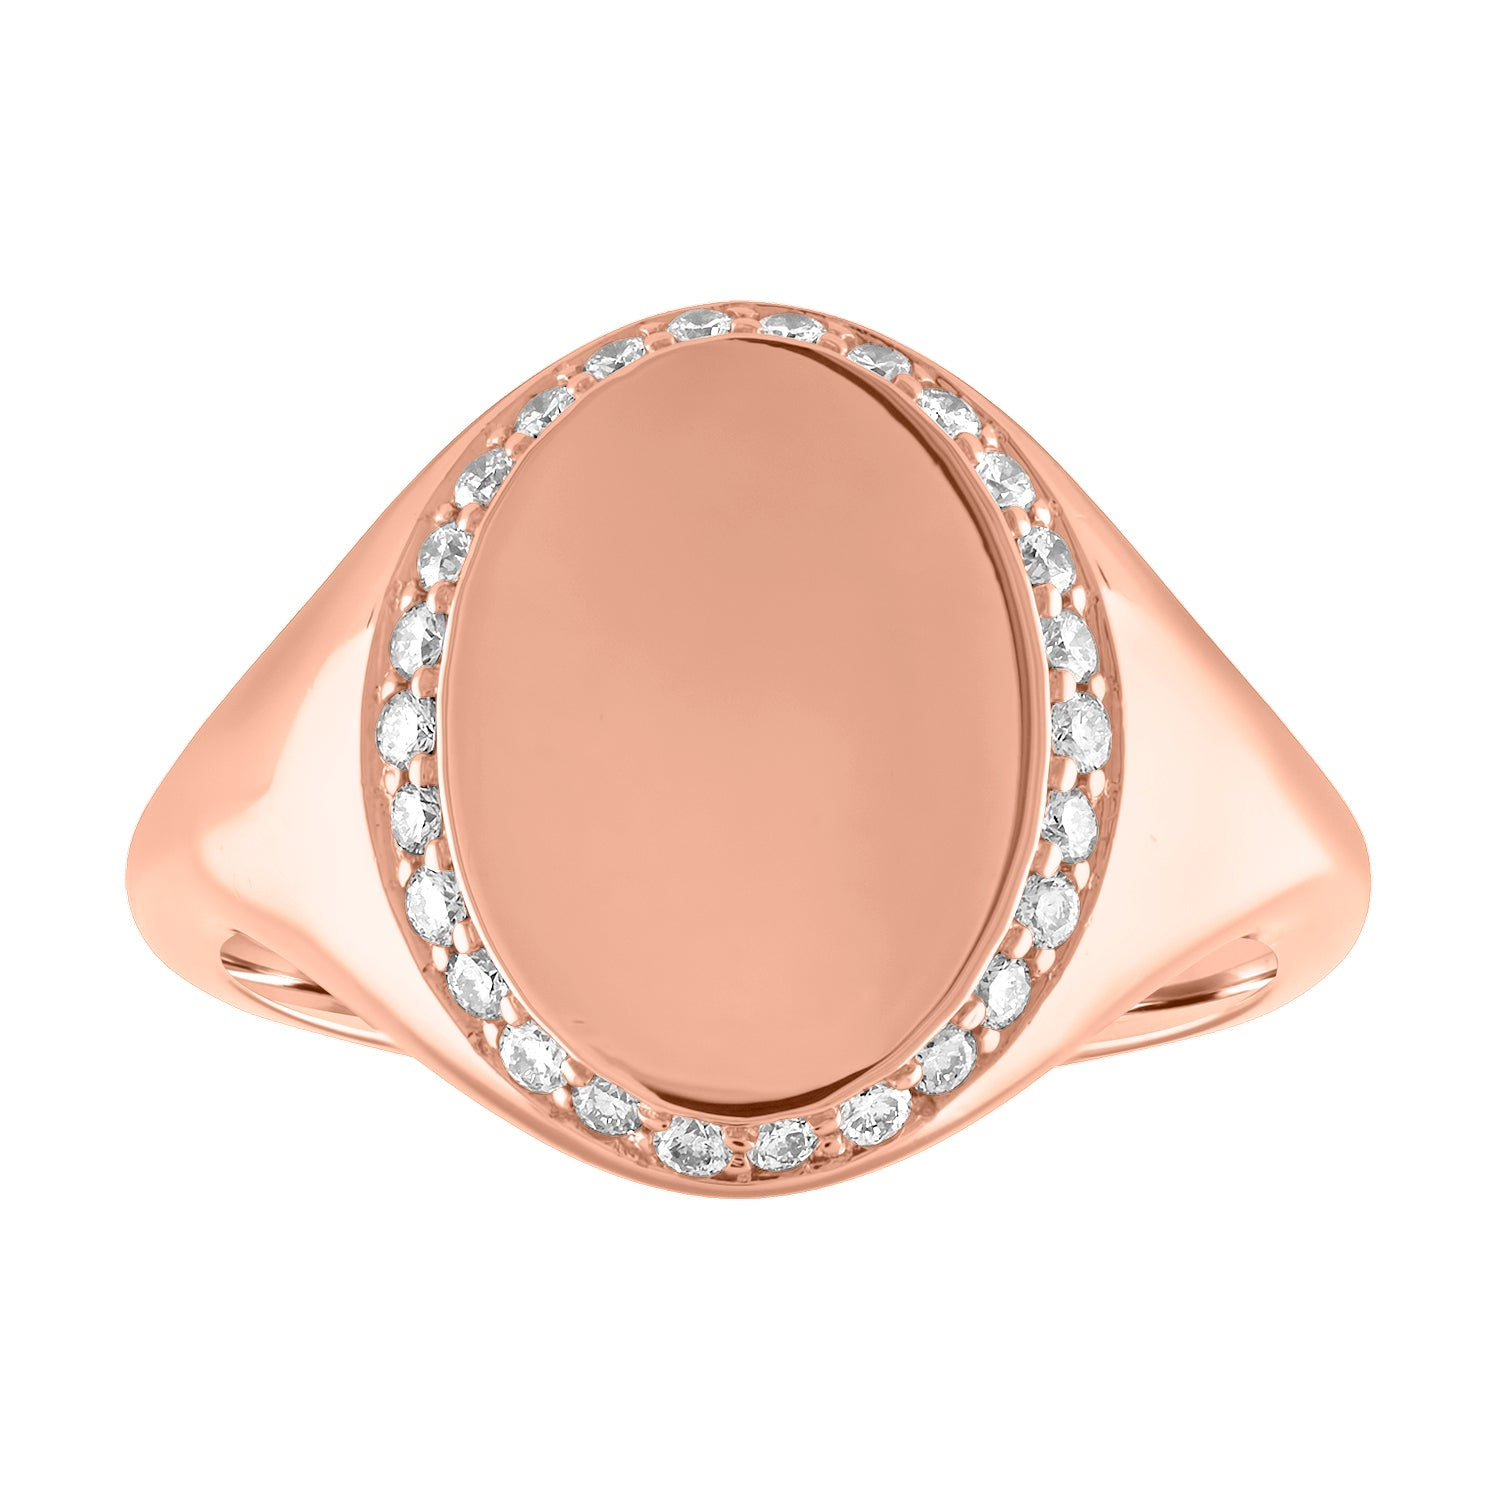 Large oval signet ring with diamond border